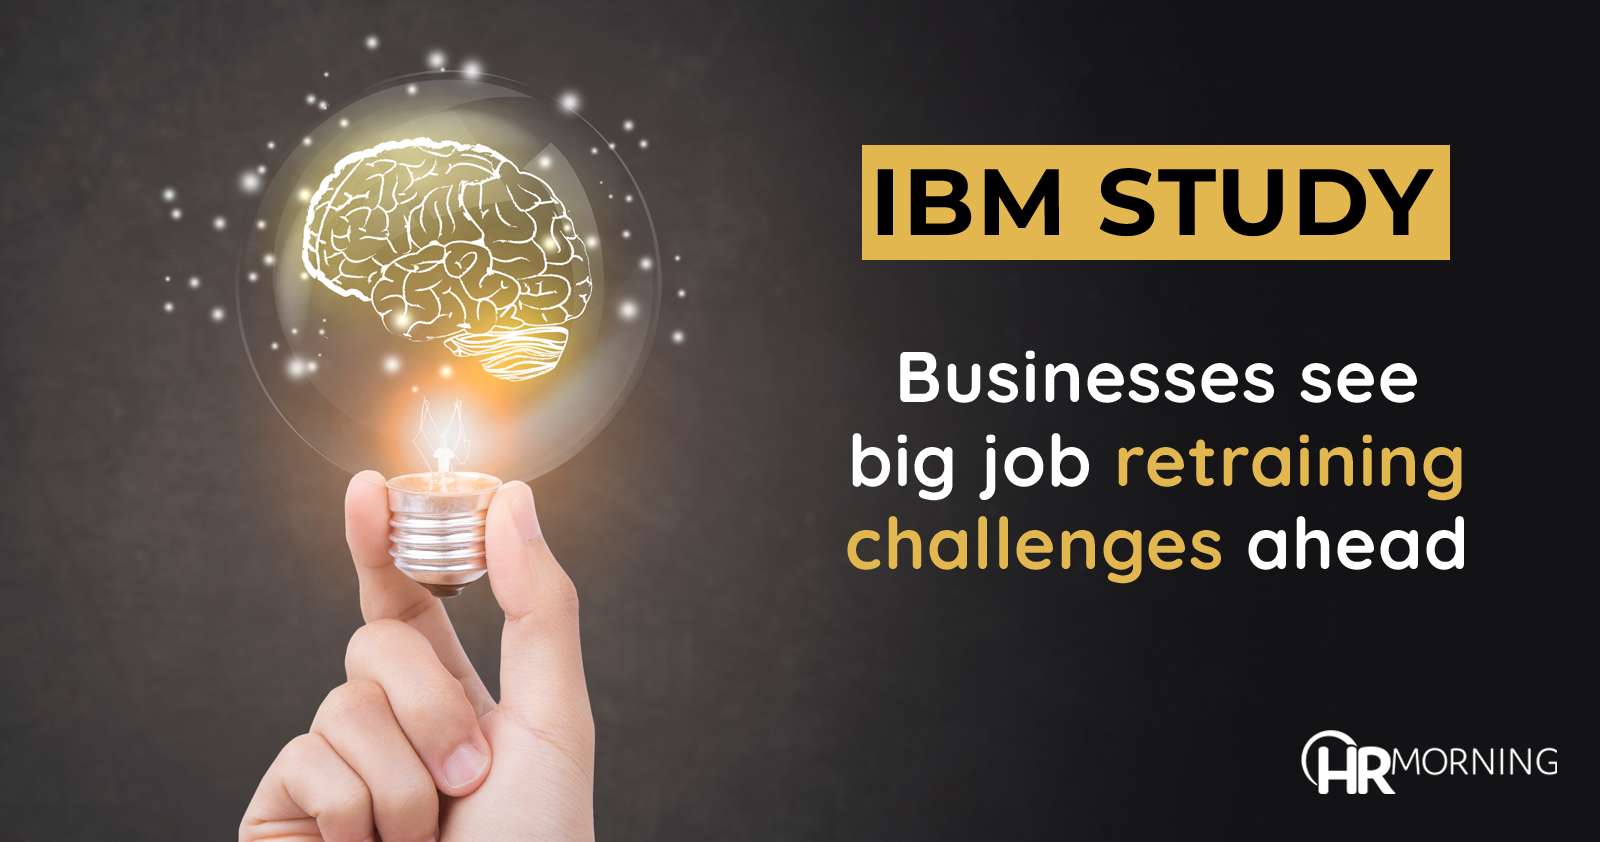 IBM study: Businesses see big job retraining challenges ahead